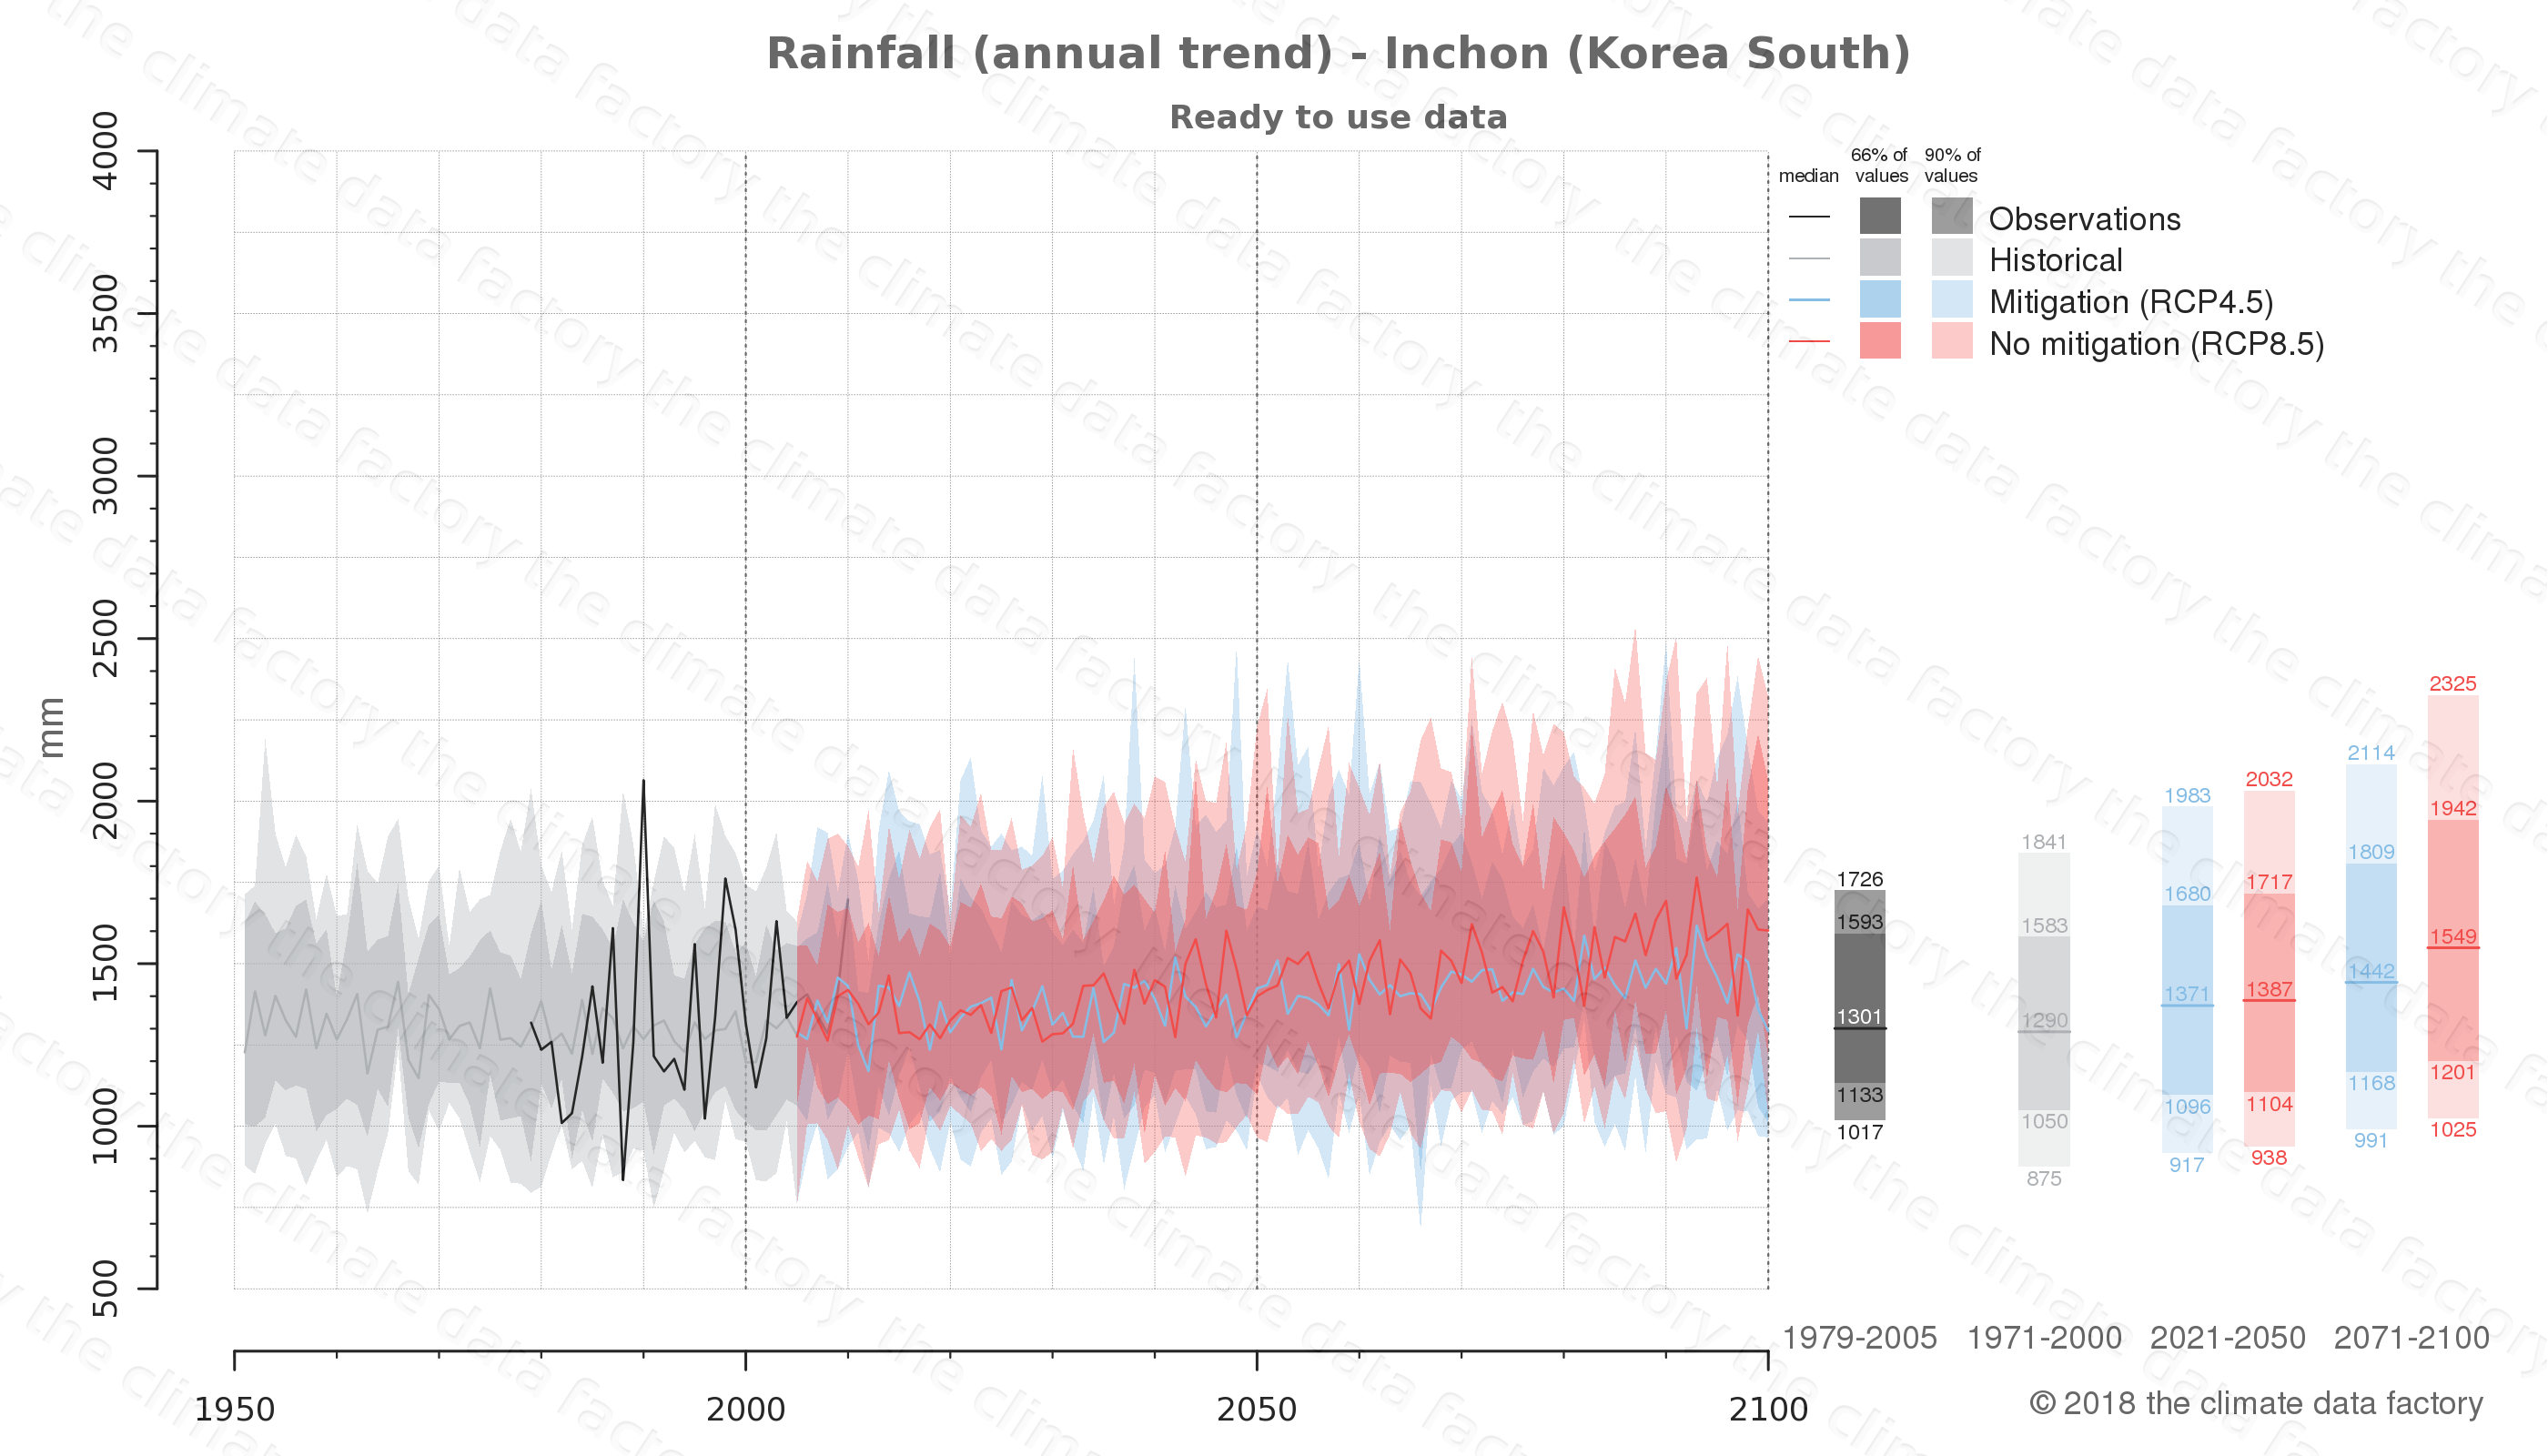 climate change data policy adaptation climate graph city data rainfall inchon south korea